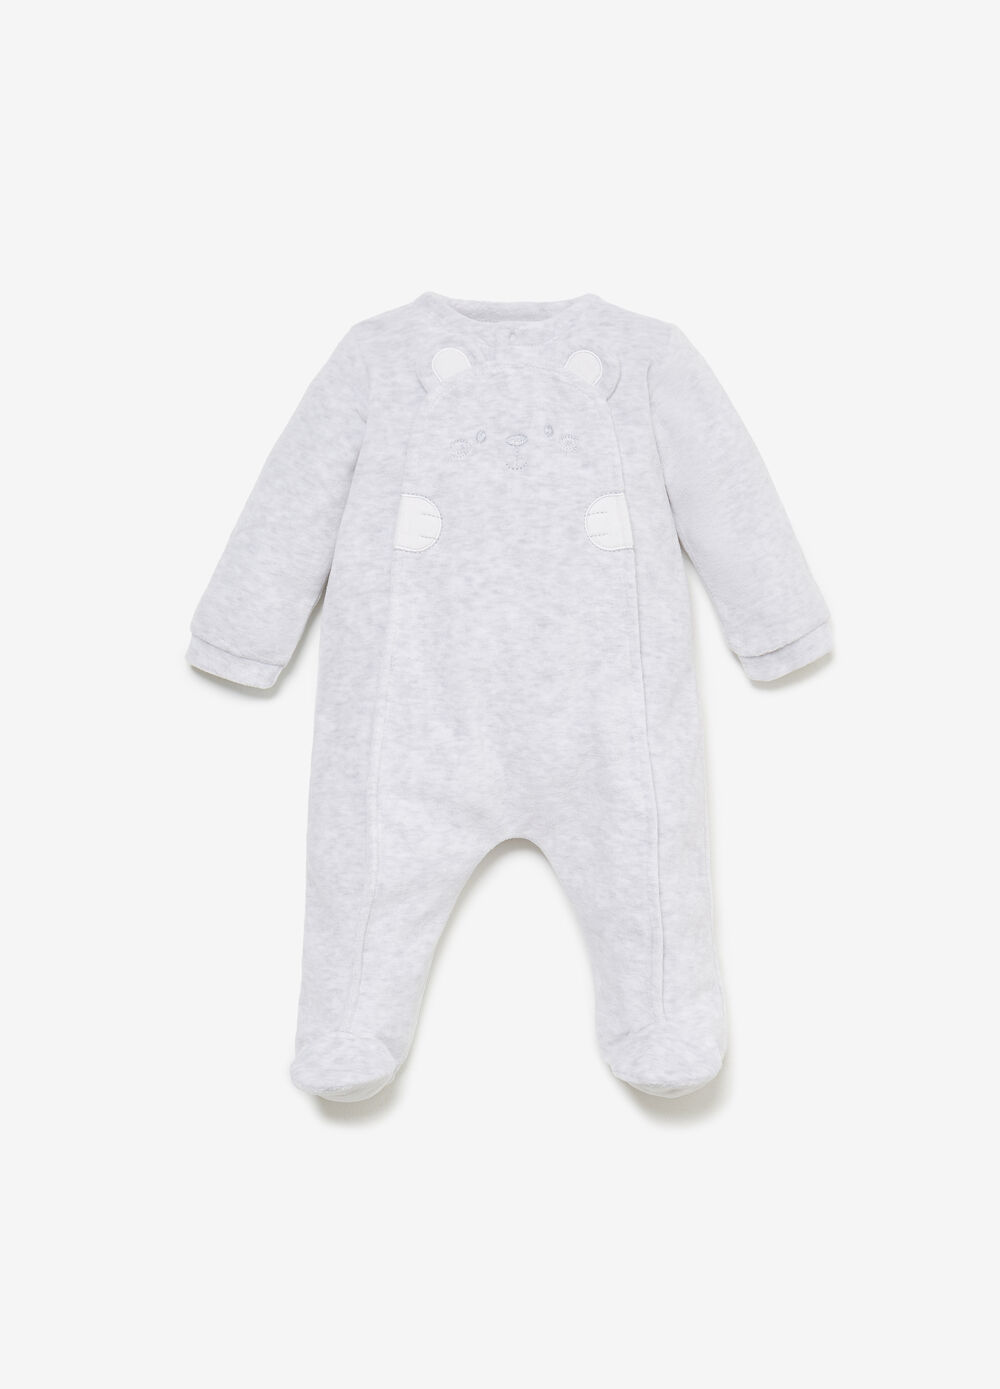 Mélange romper suit with animal embroidery